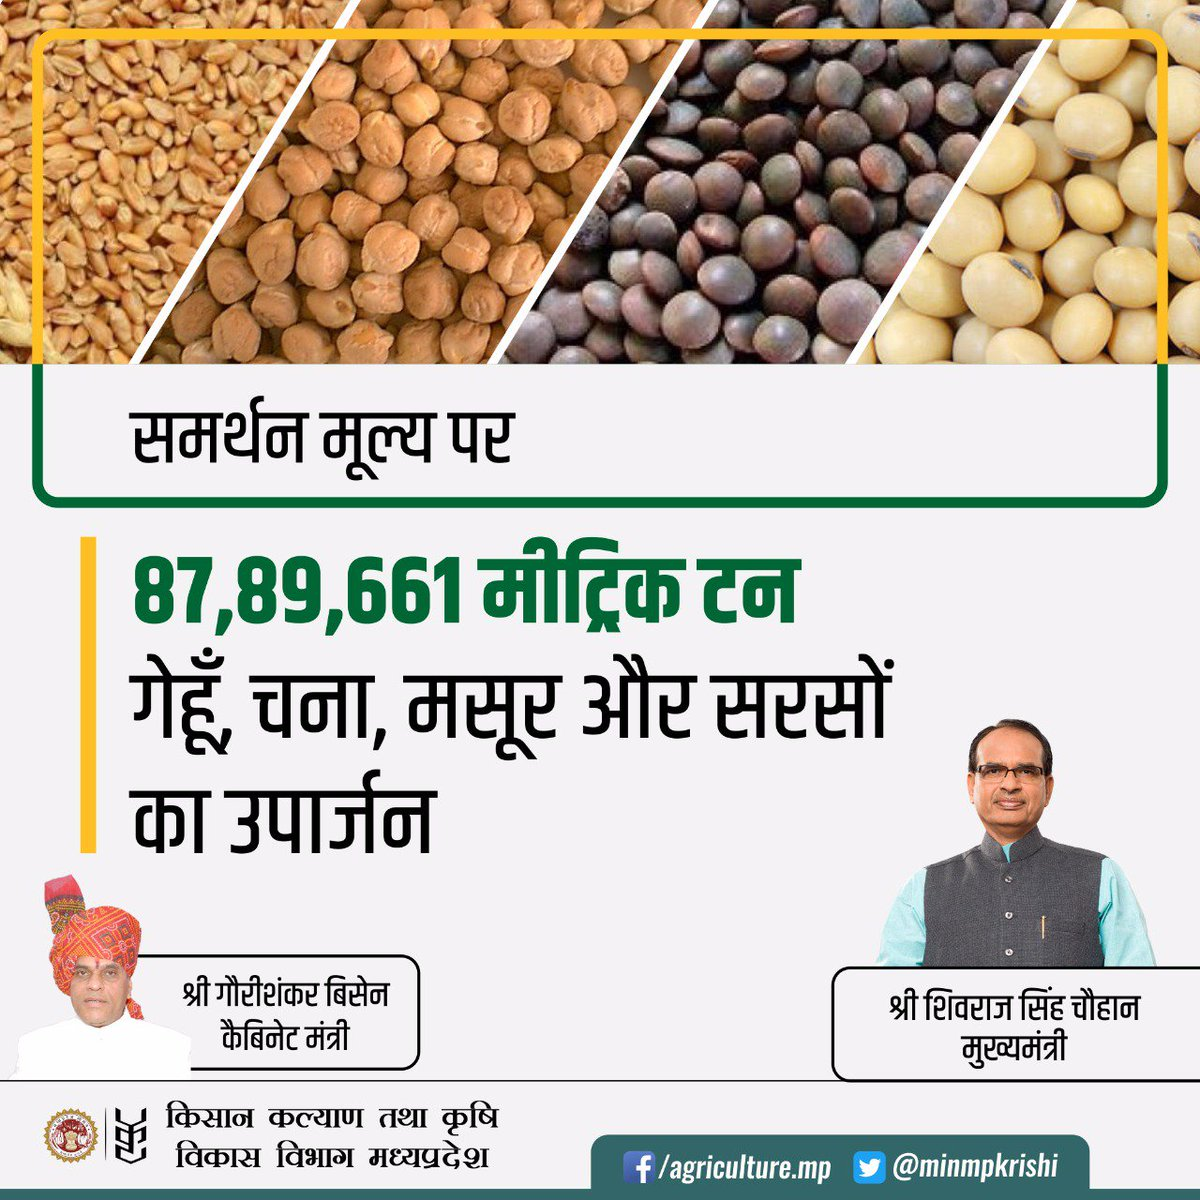 Agriculture Department, MP on Twitter: